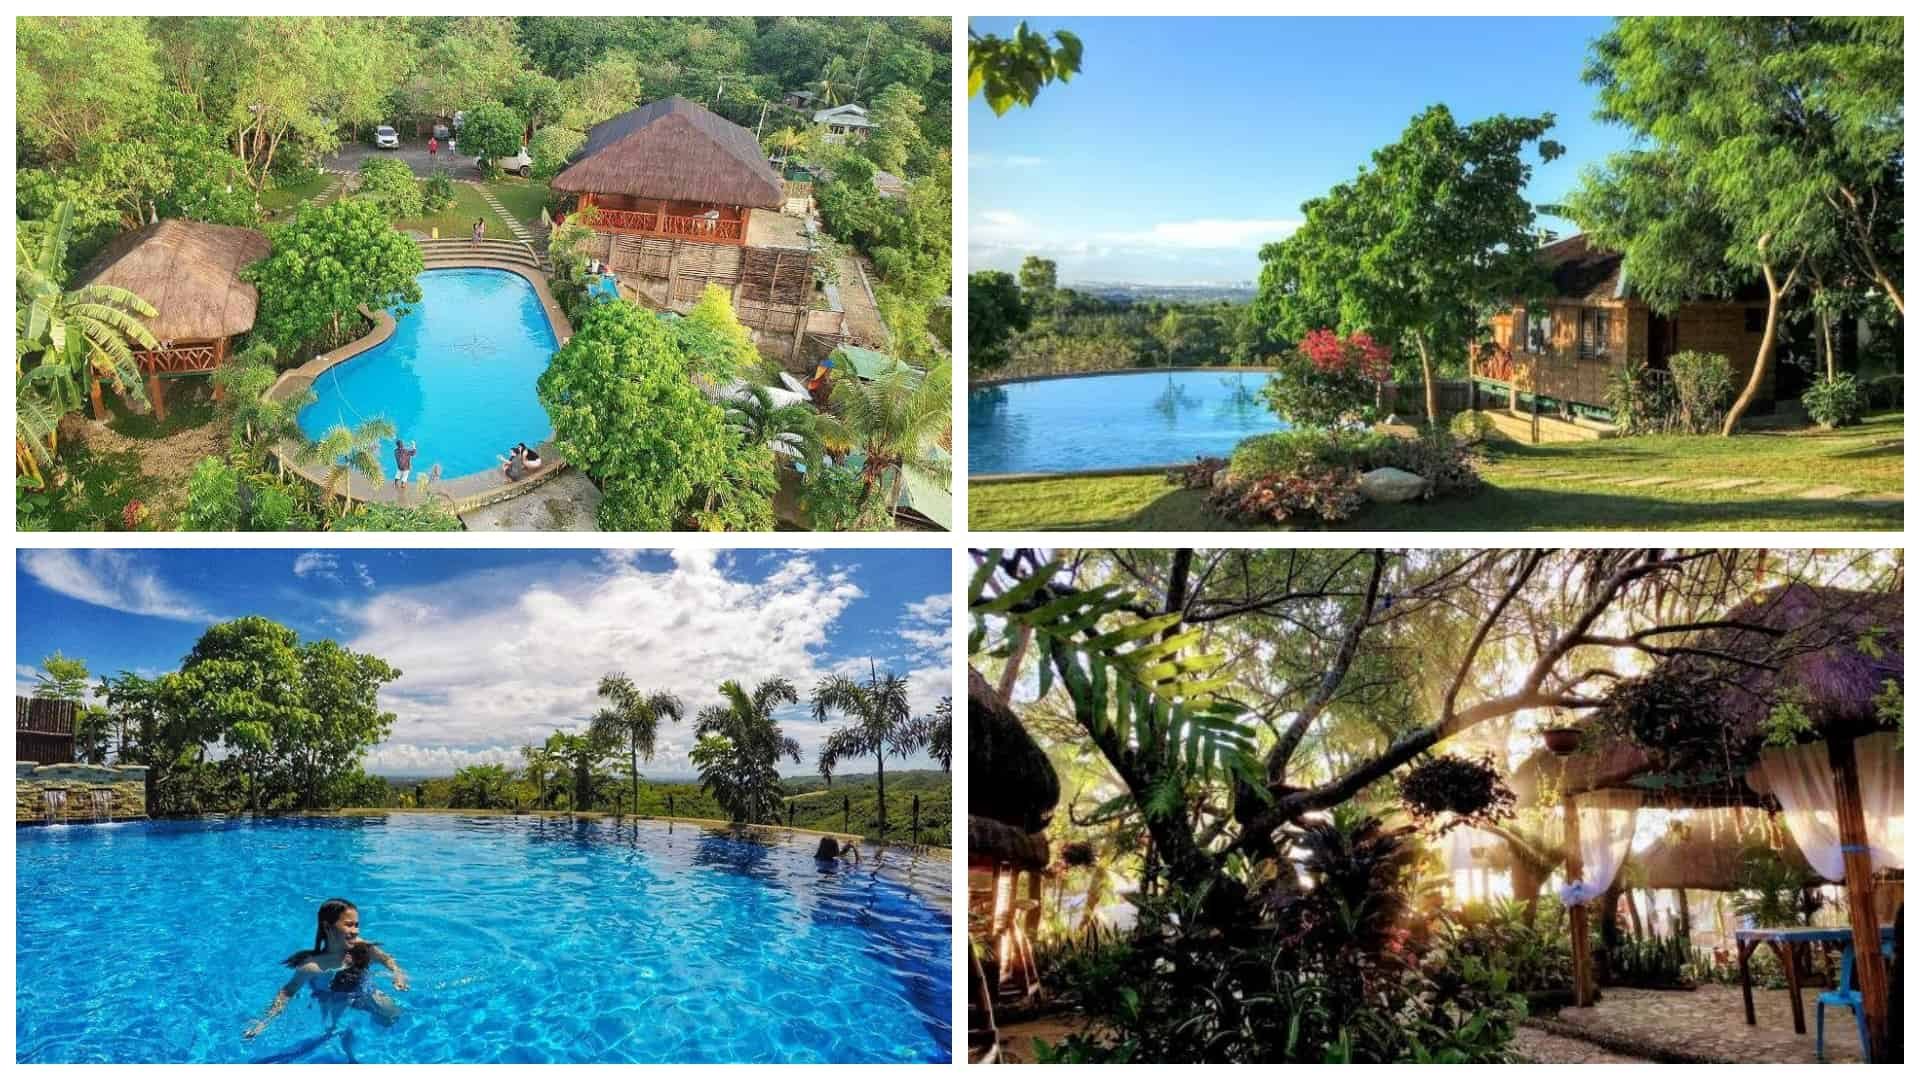 ibabaw mountain resort: a relaxing overlooking view | sugbo.ph - cebu